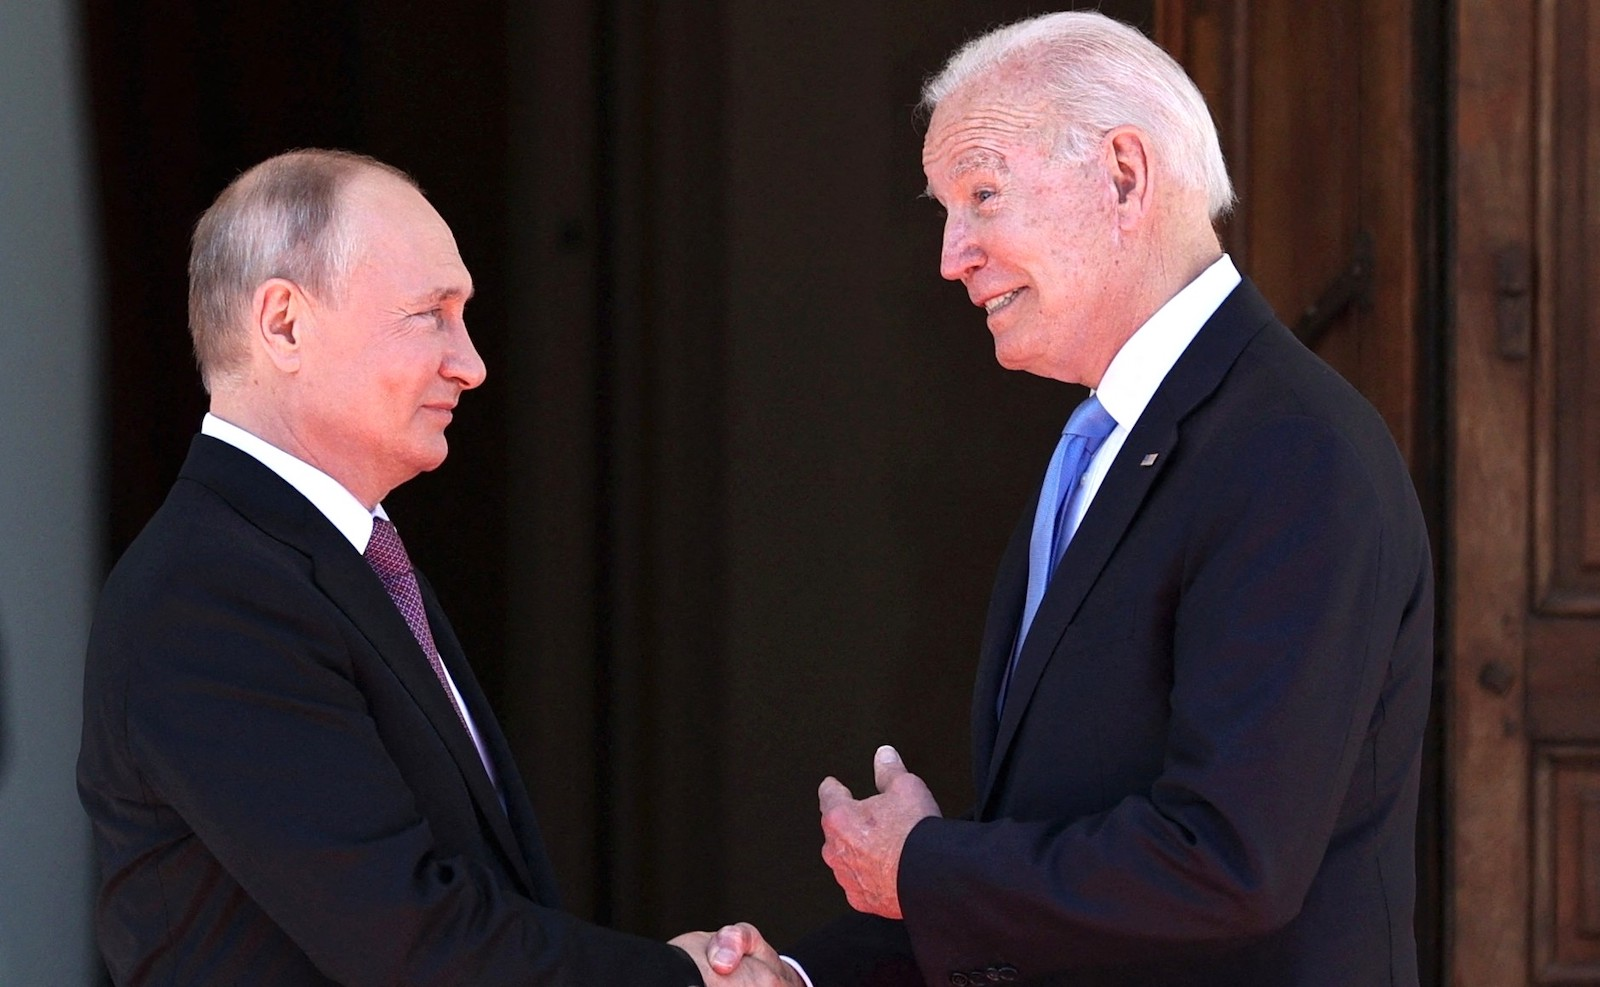 Russian President Vladimir Putin and US President Joe Biden hold their summit in Geneva at the first such meeting since 2018. Photo: AFP / EyePress News